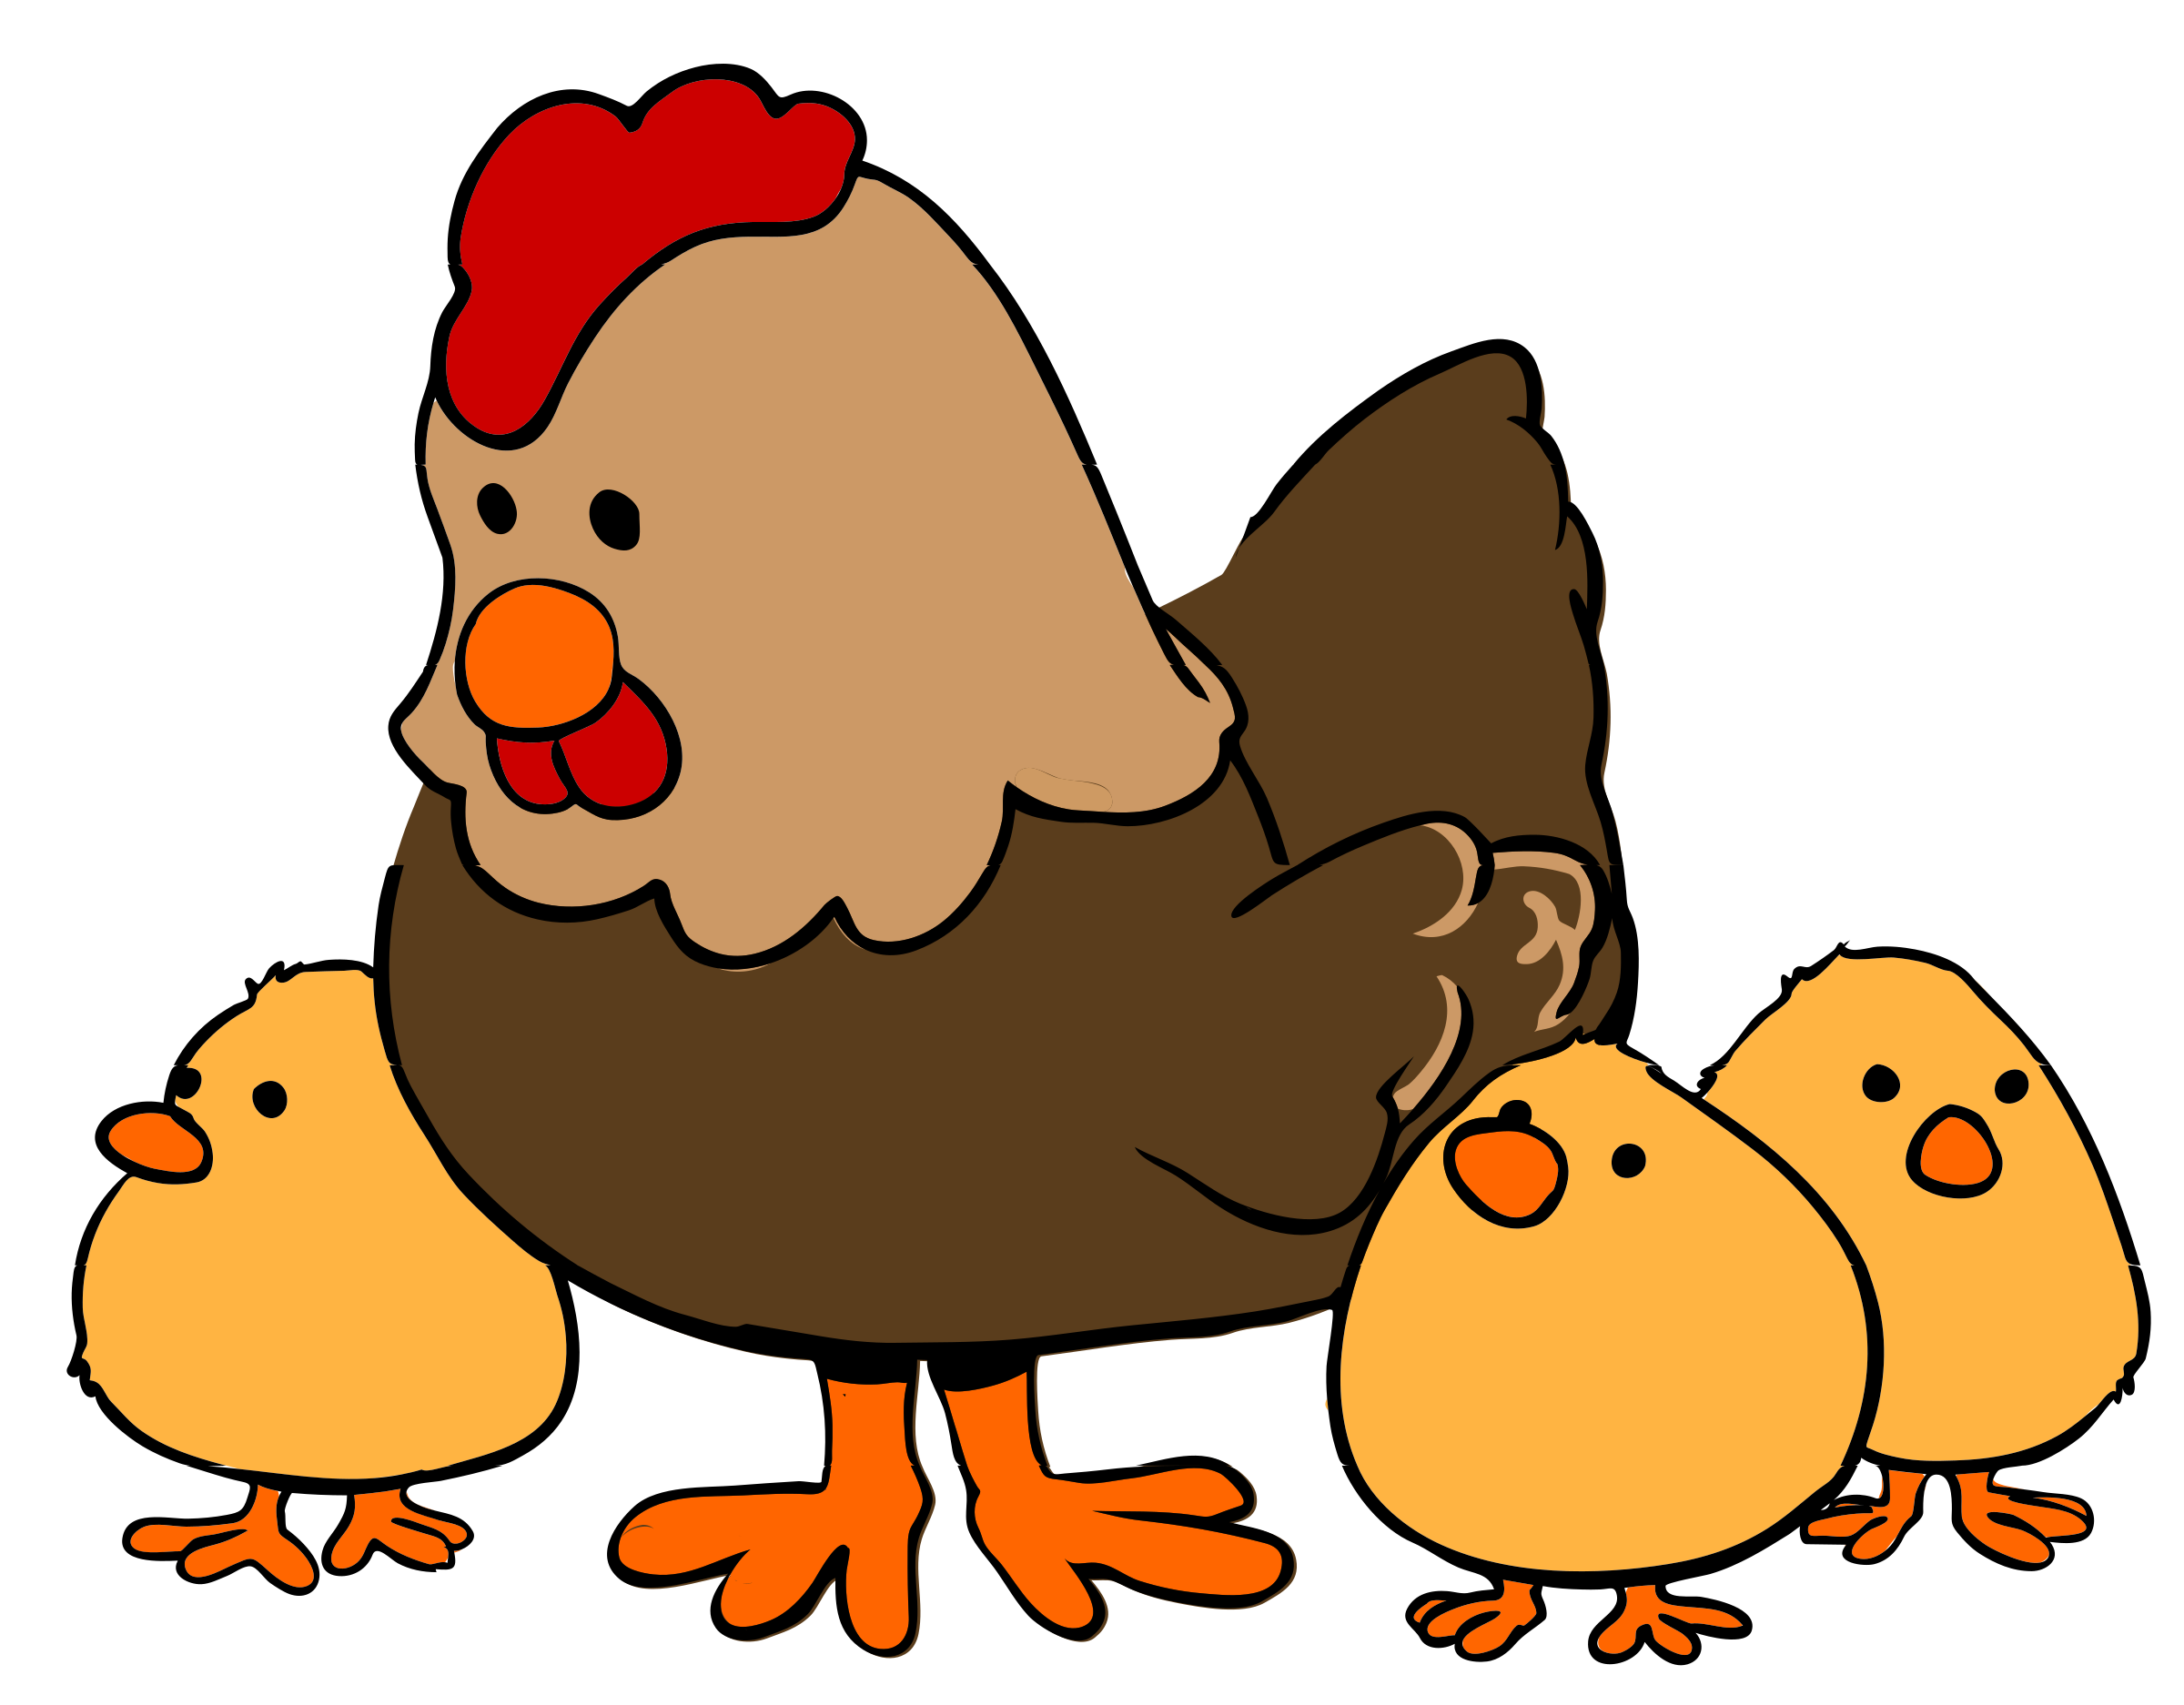 Chickens clipart veggy. Hen and chicks cartoon